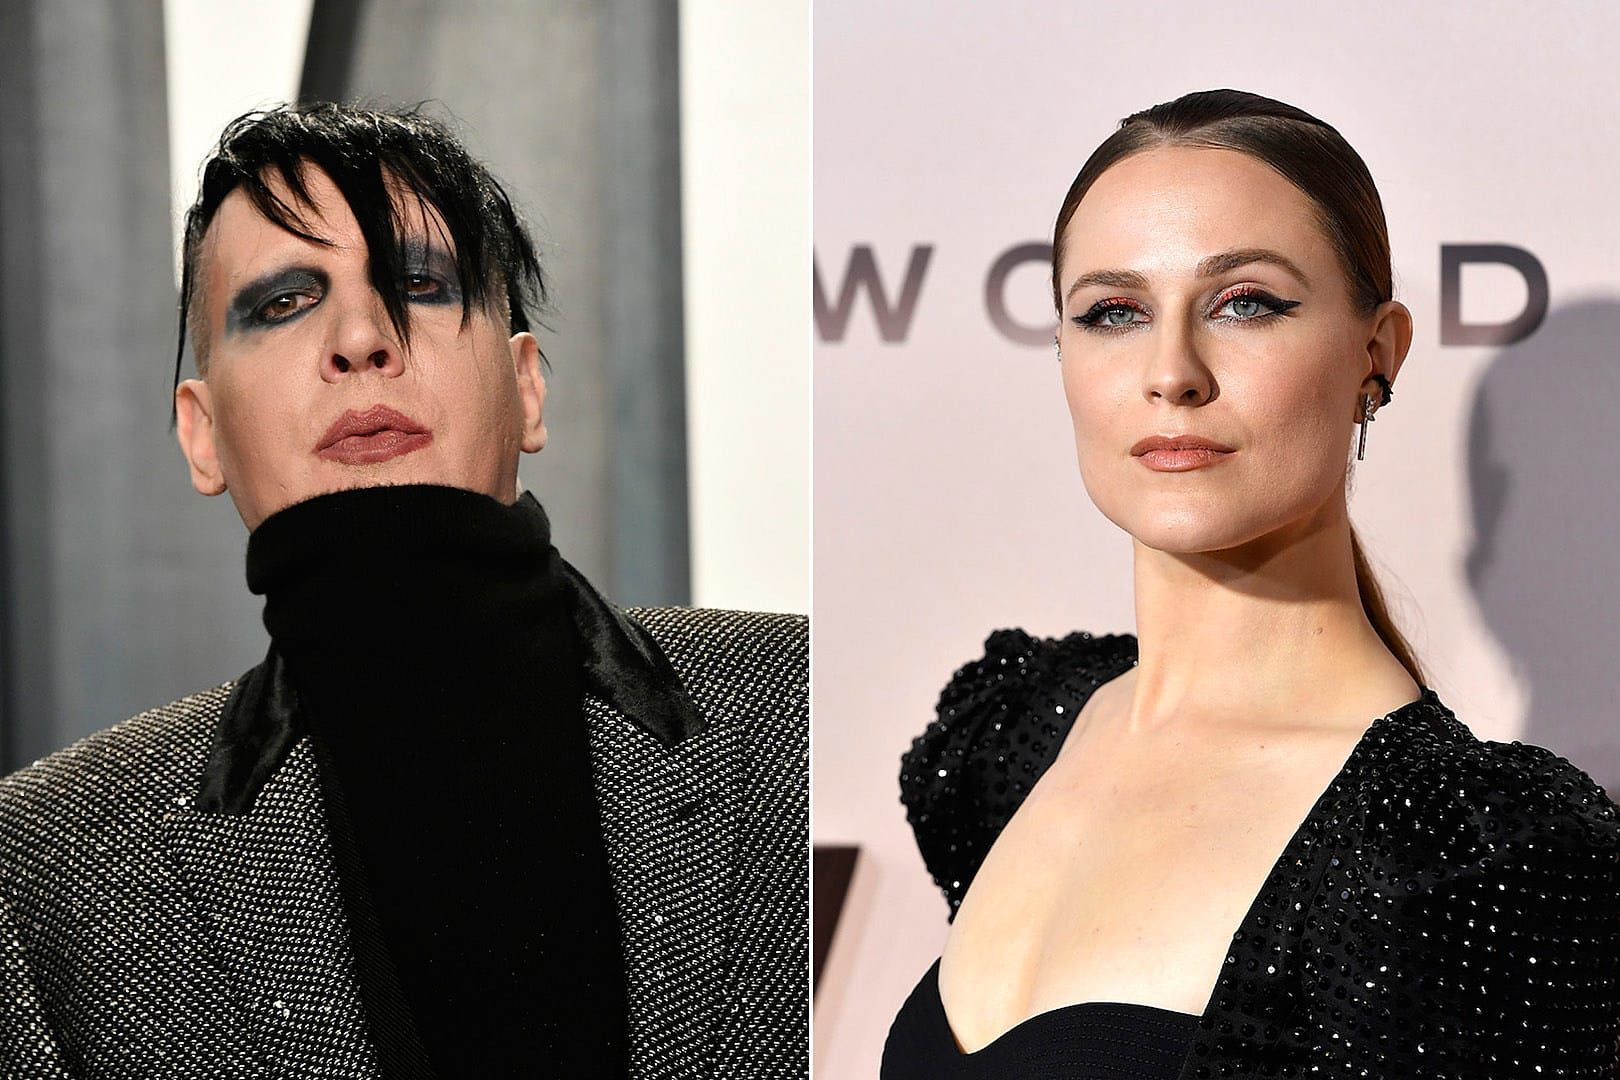 Evan Rachel Wood accusa Marilyn Manson: